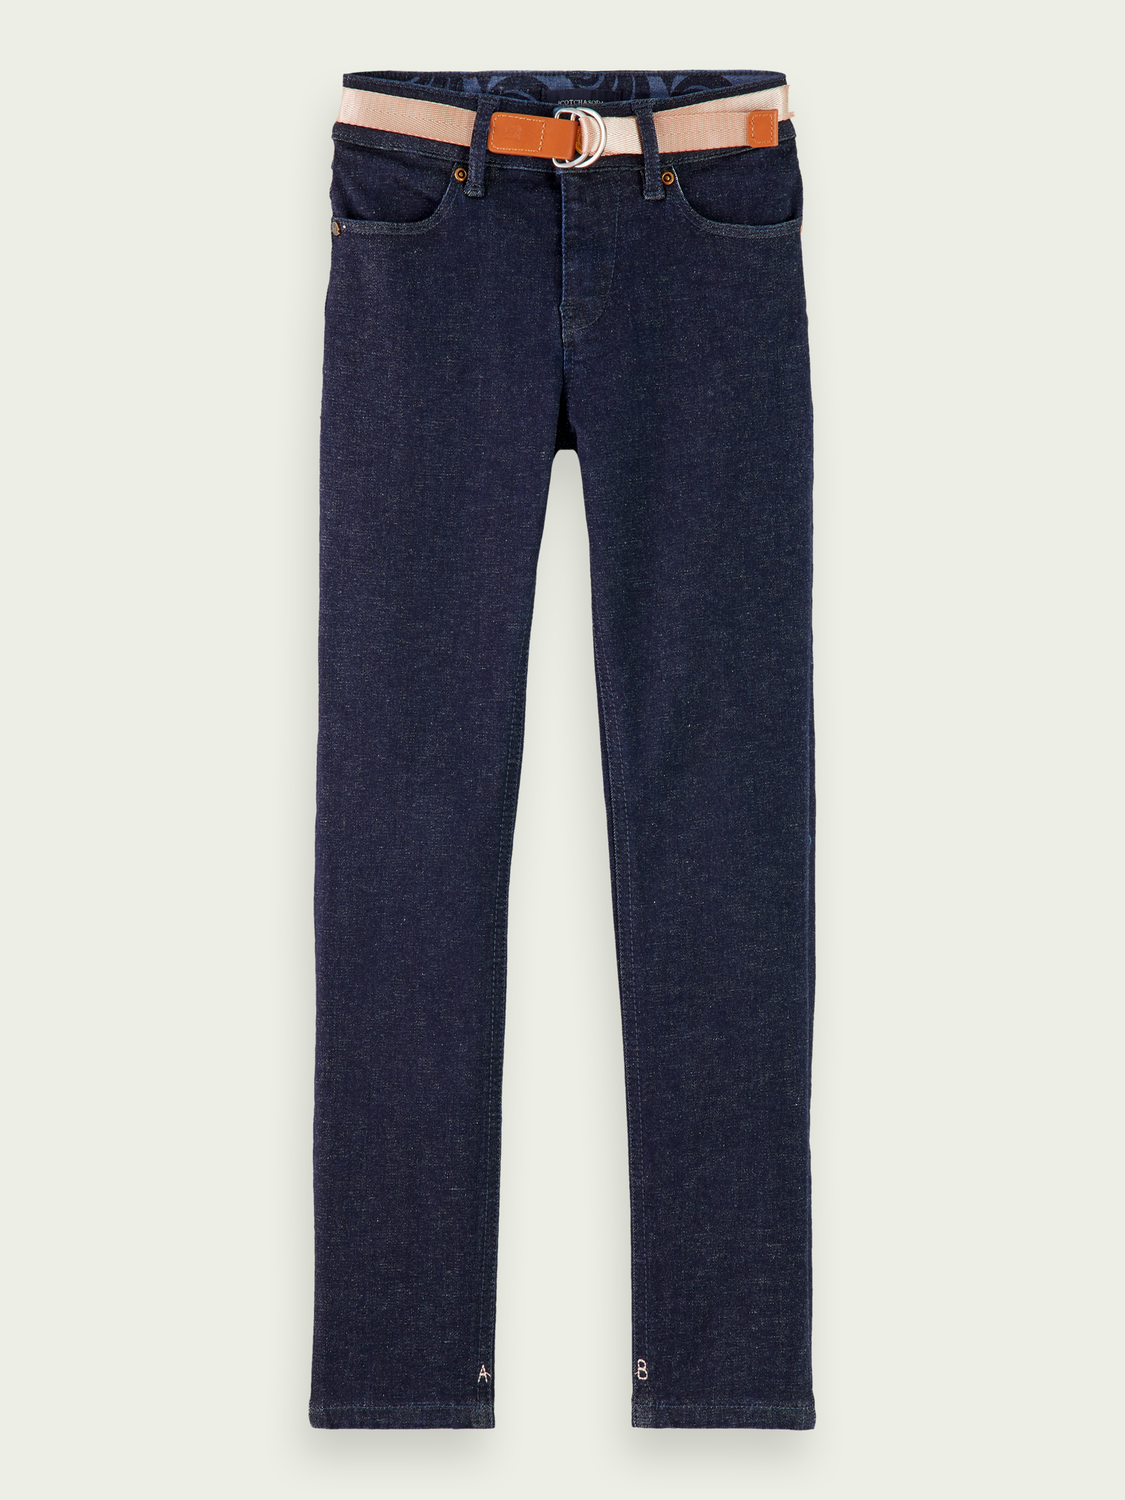 Kids La Charmante - New Blauw Rinse | High rise skinny jeans